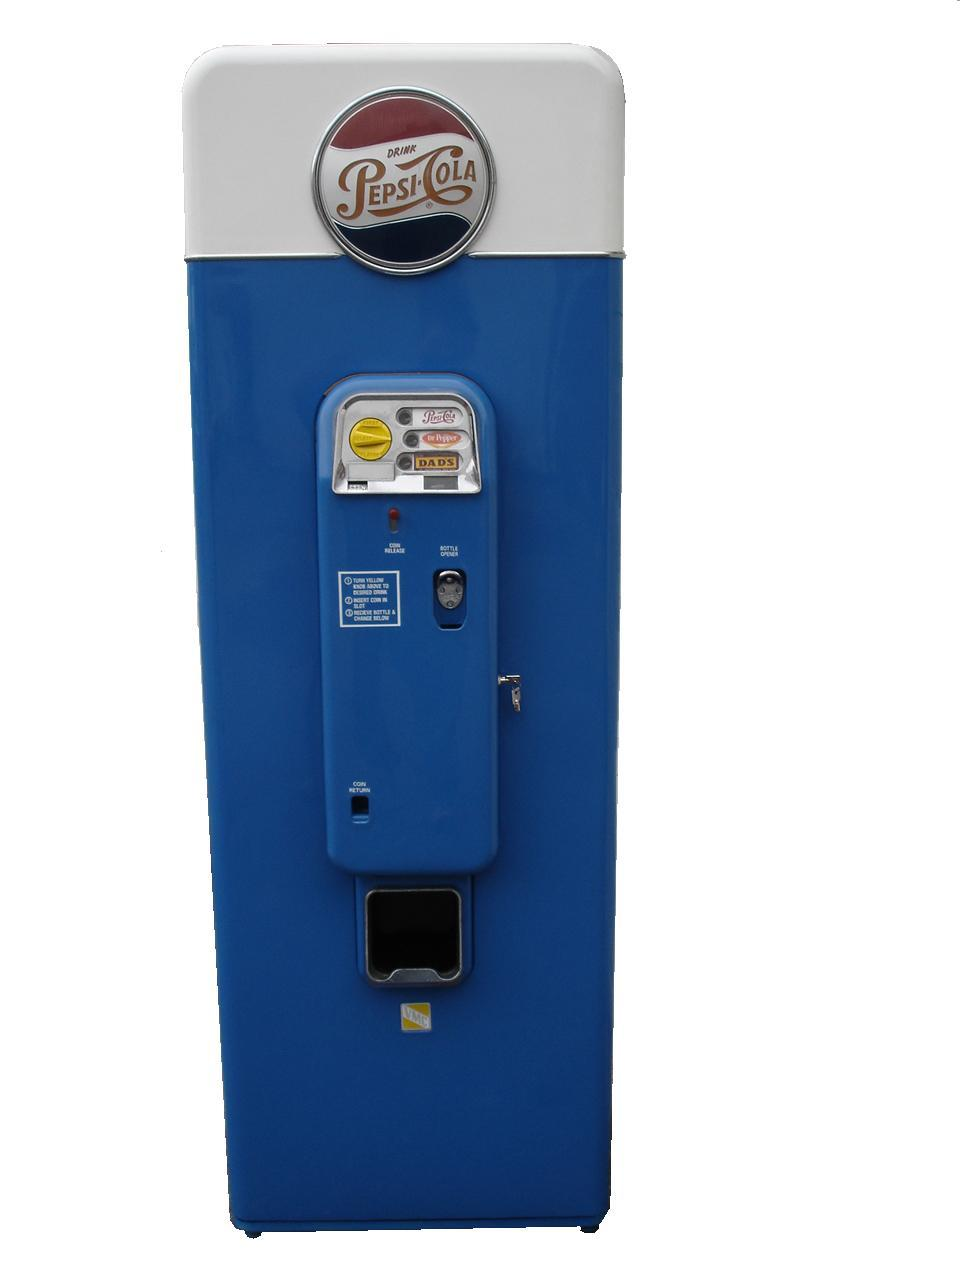 vintage pepsi vending machine for sale, cotton candy vending machine, vending machine in japan